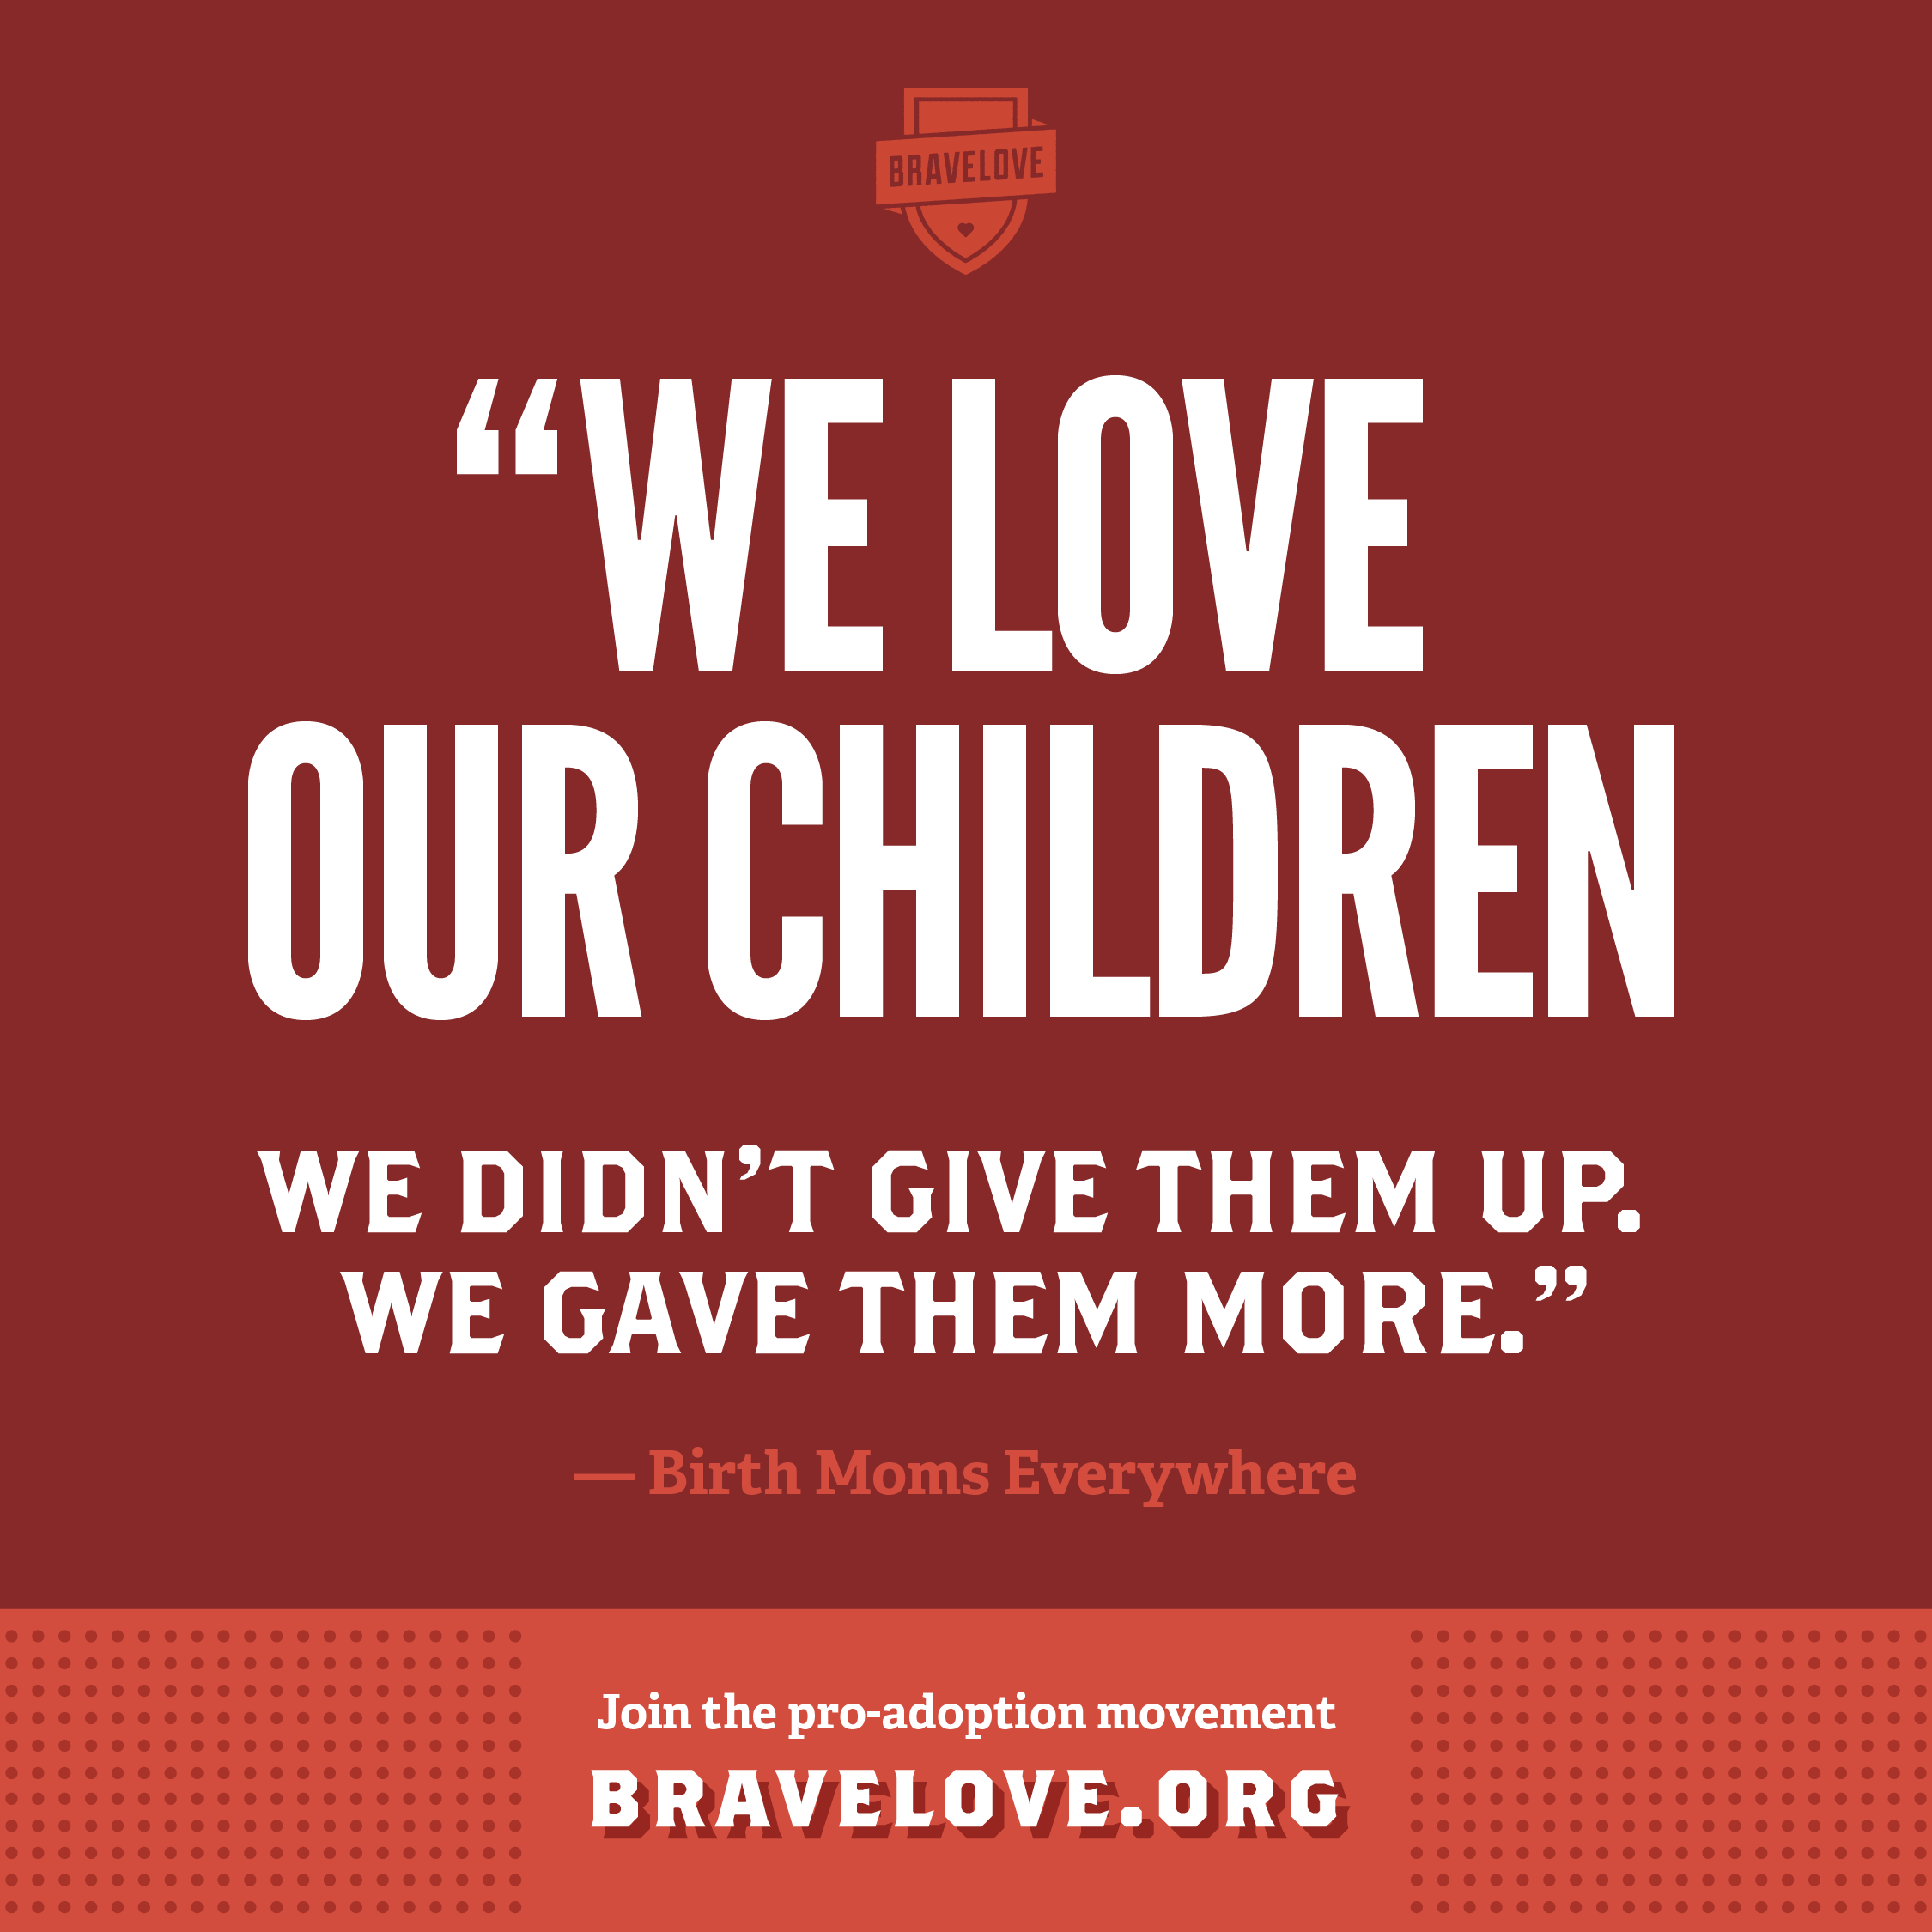 BraveLove-NationalAdoptionMonth-SocialPosts-R2-01_(1).png